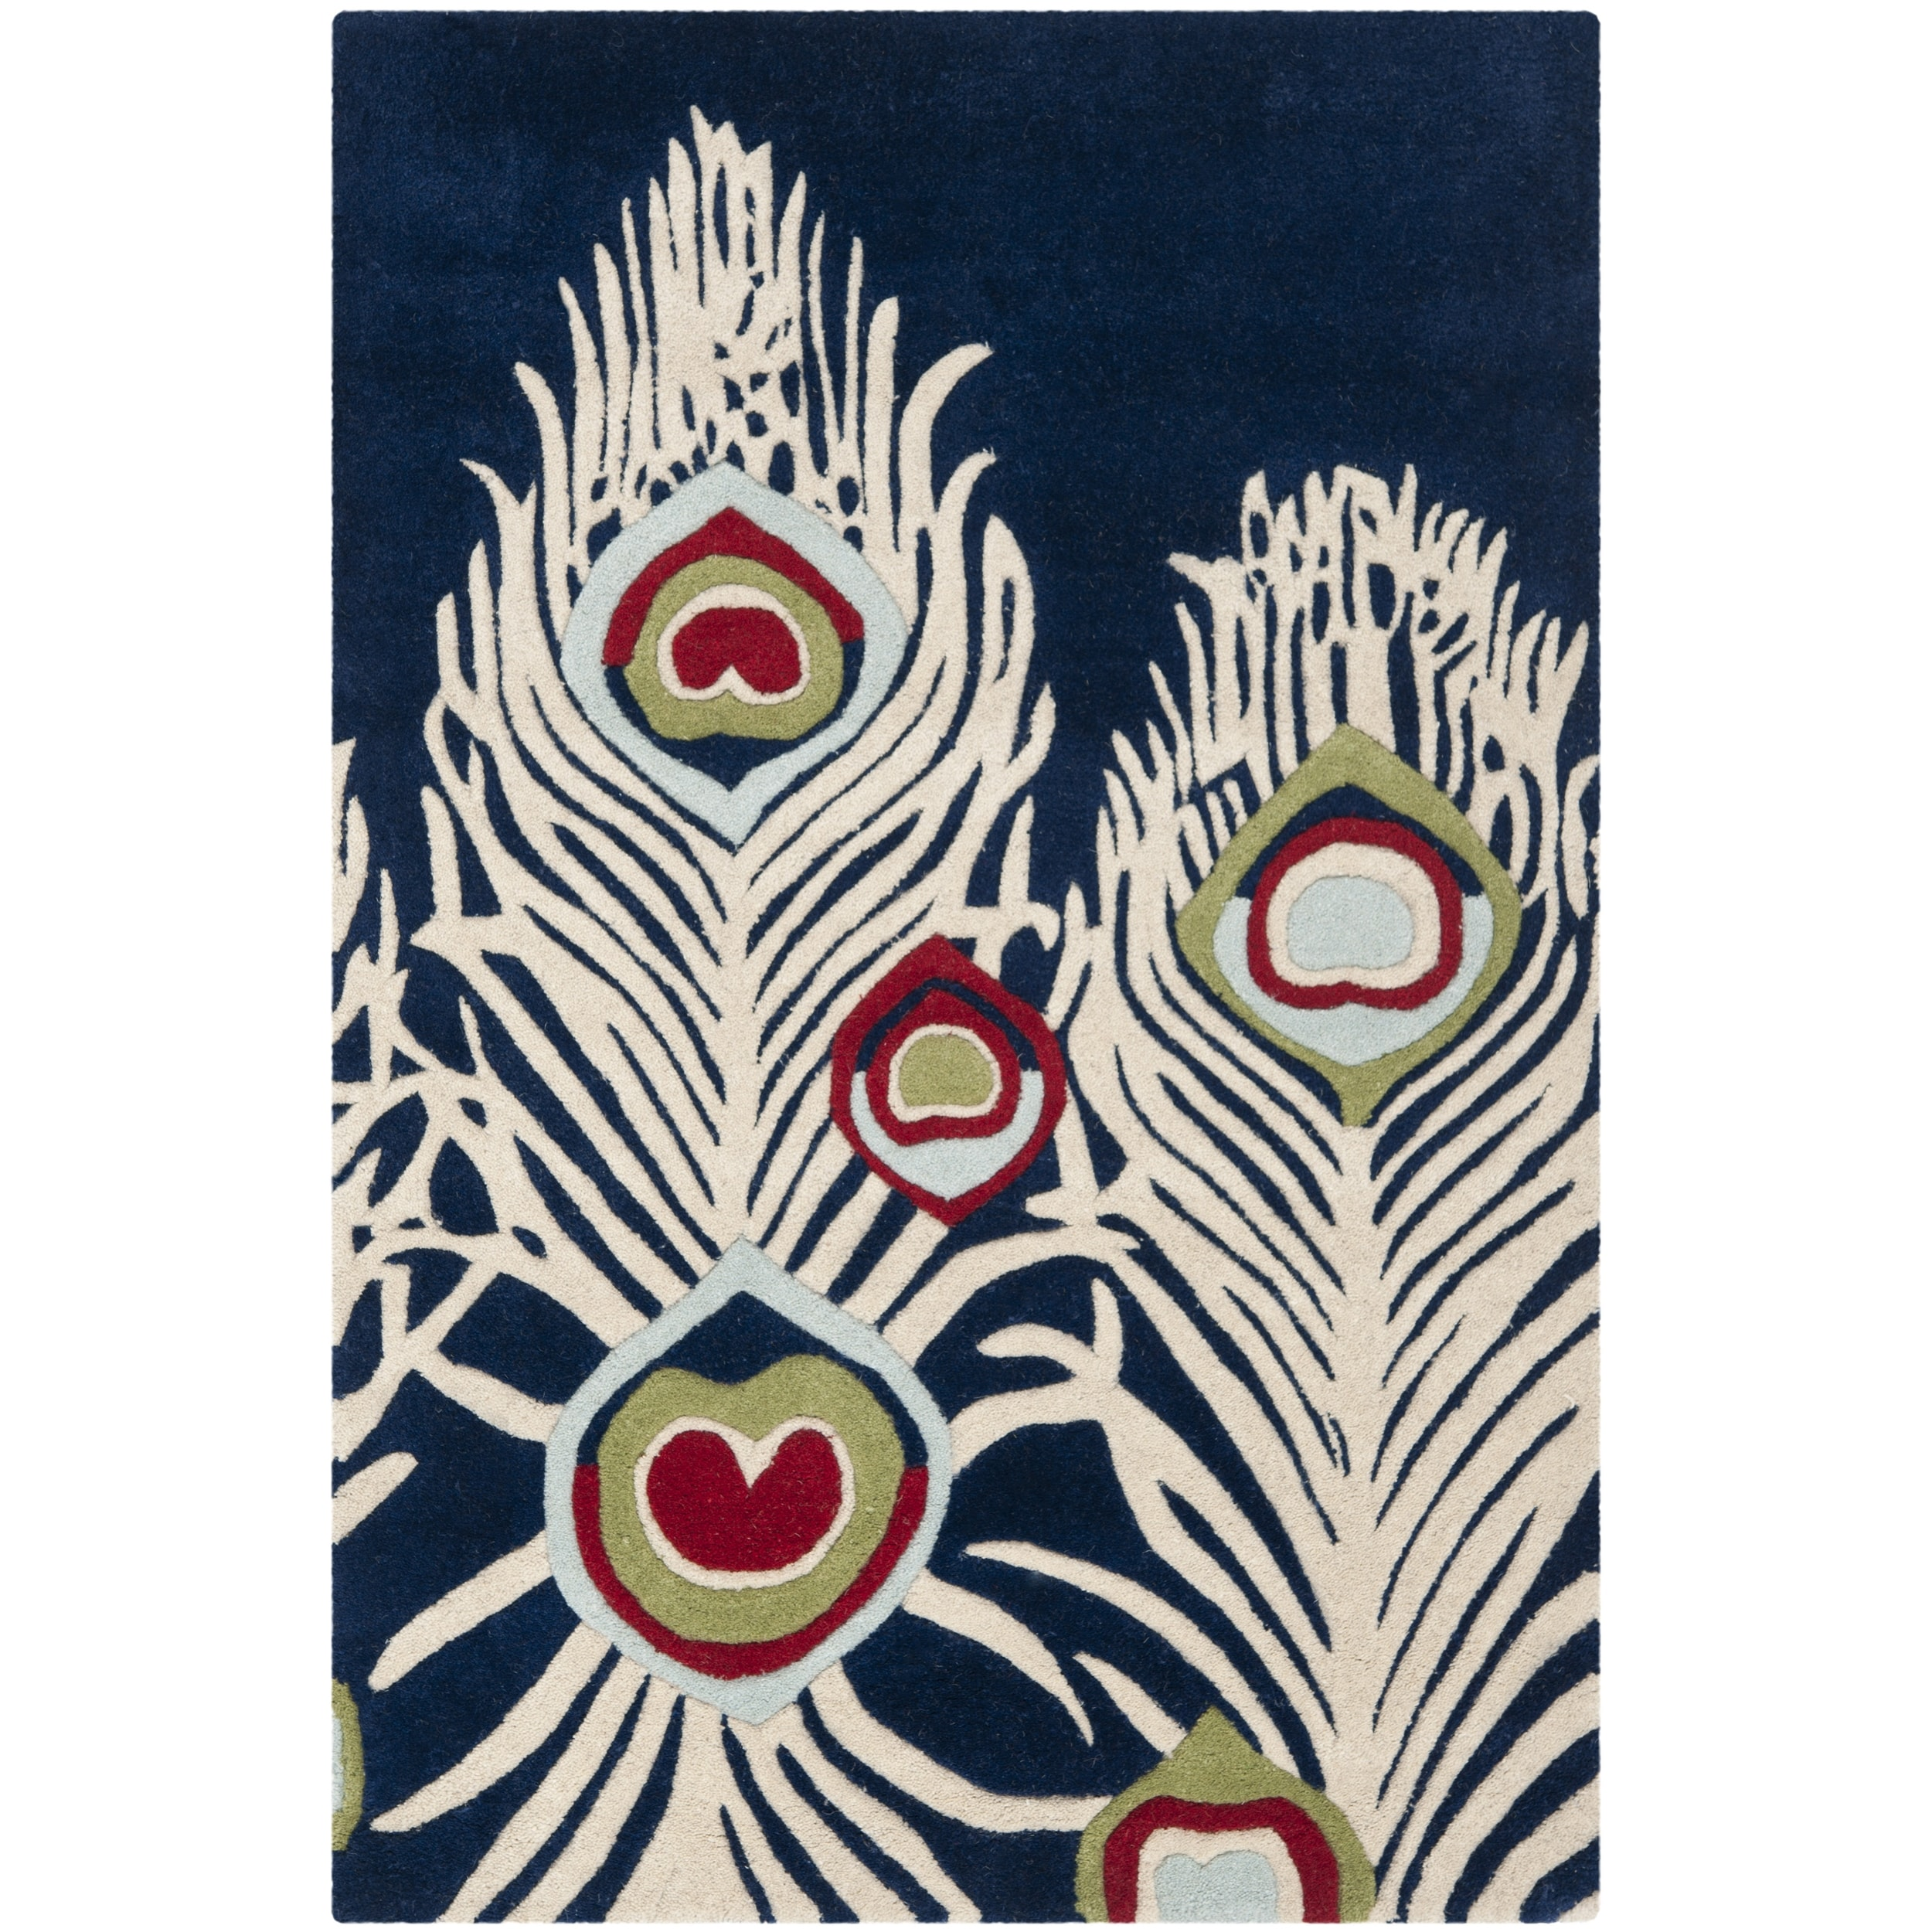 Safavieh Handmade Pea Feathers Blue New Zealand Wool Rug On Free Shipping Orders Over 45 Com 7617658